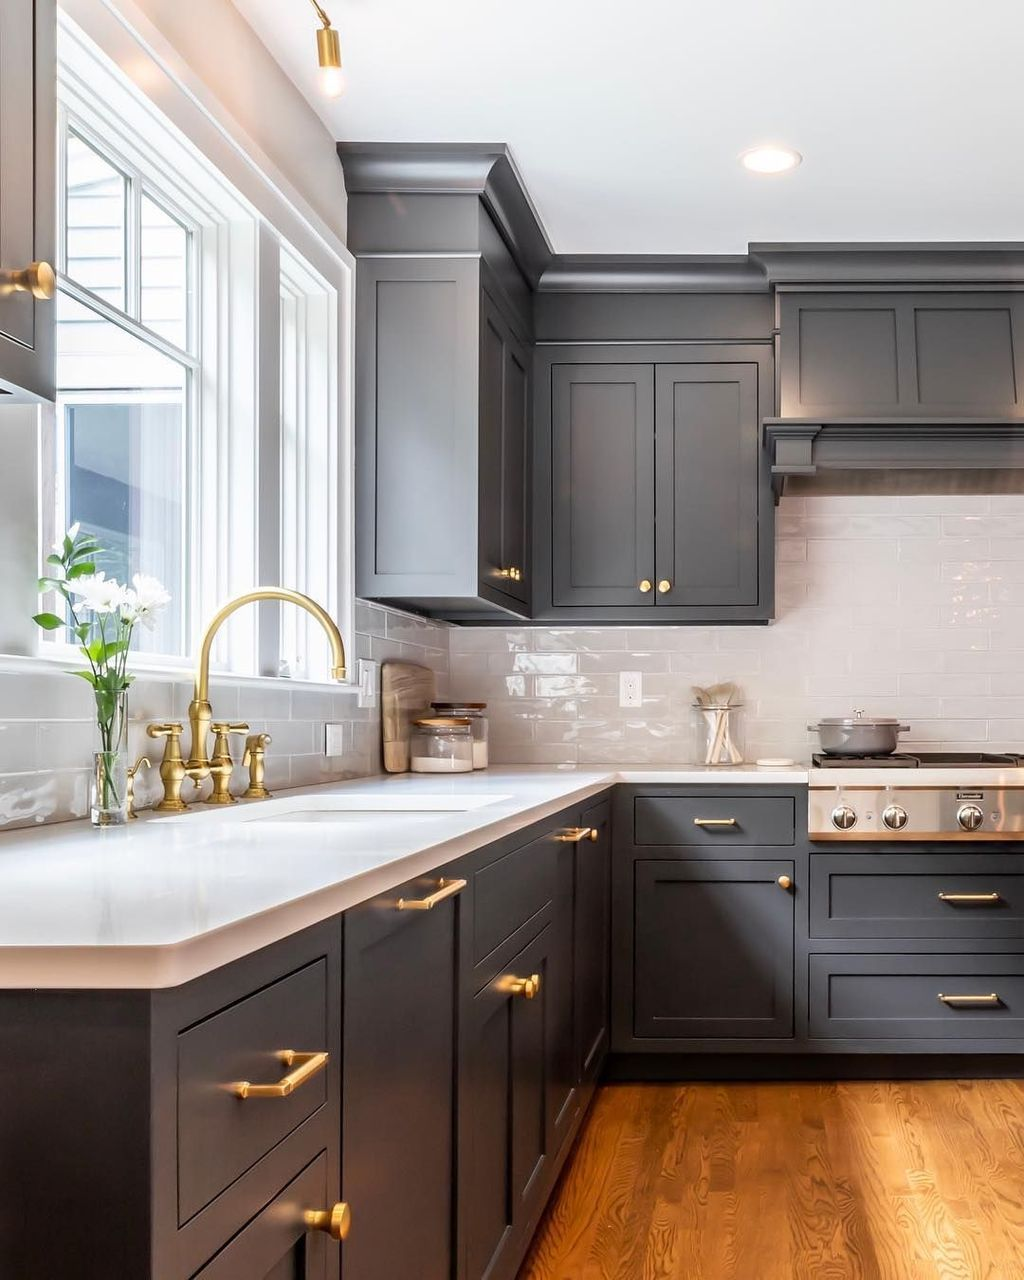 32 Fabulous Grey Kitchen Cabinets You Will Love In 2020 Diy Kitchen Renovation Grey Kitchen Cabinets Kitchen Design